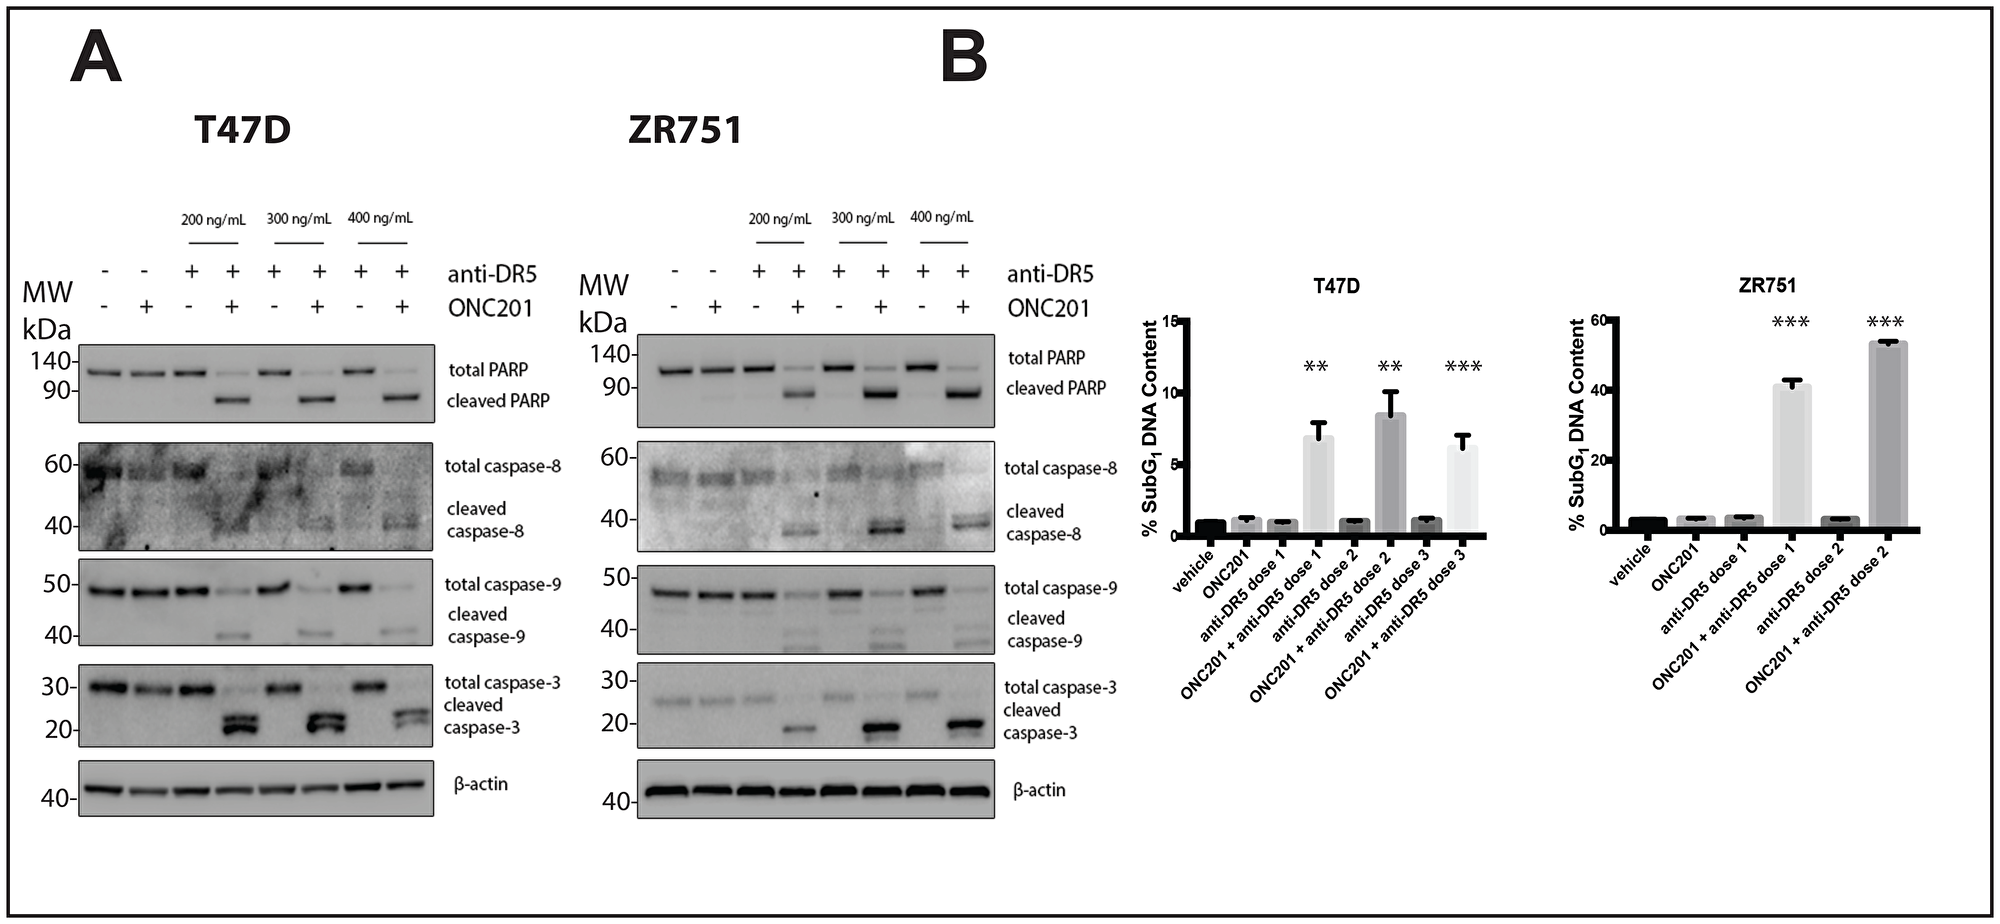 A DR5-agonistic antibody can also be used to convert the response of T47D and ZR751 breast cancer cells from anti-proliferative to pro-apoptotic.